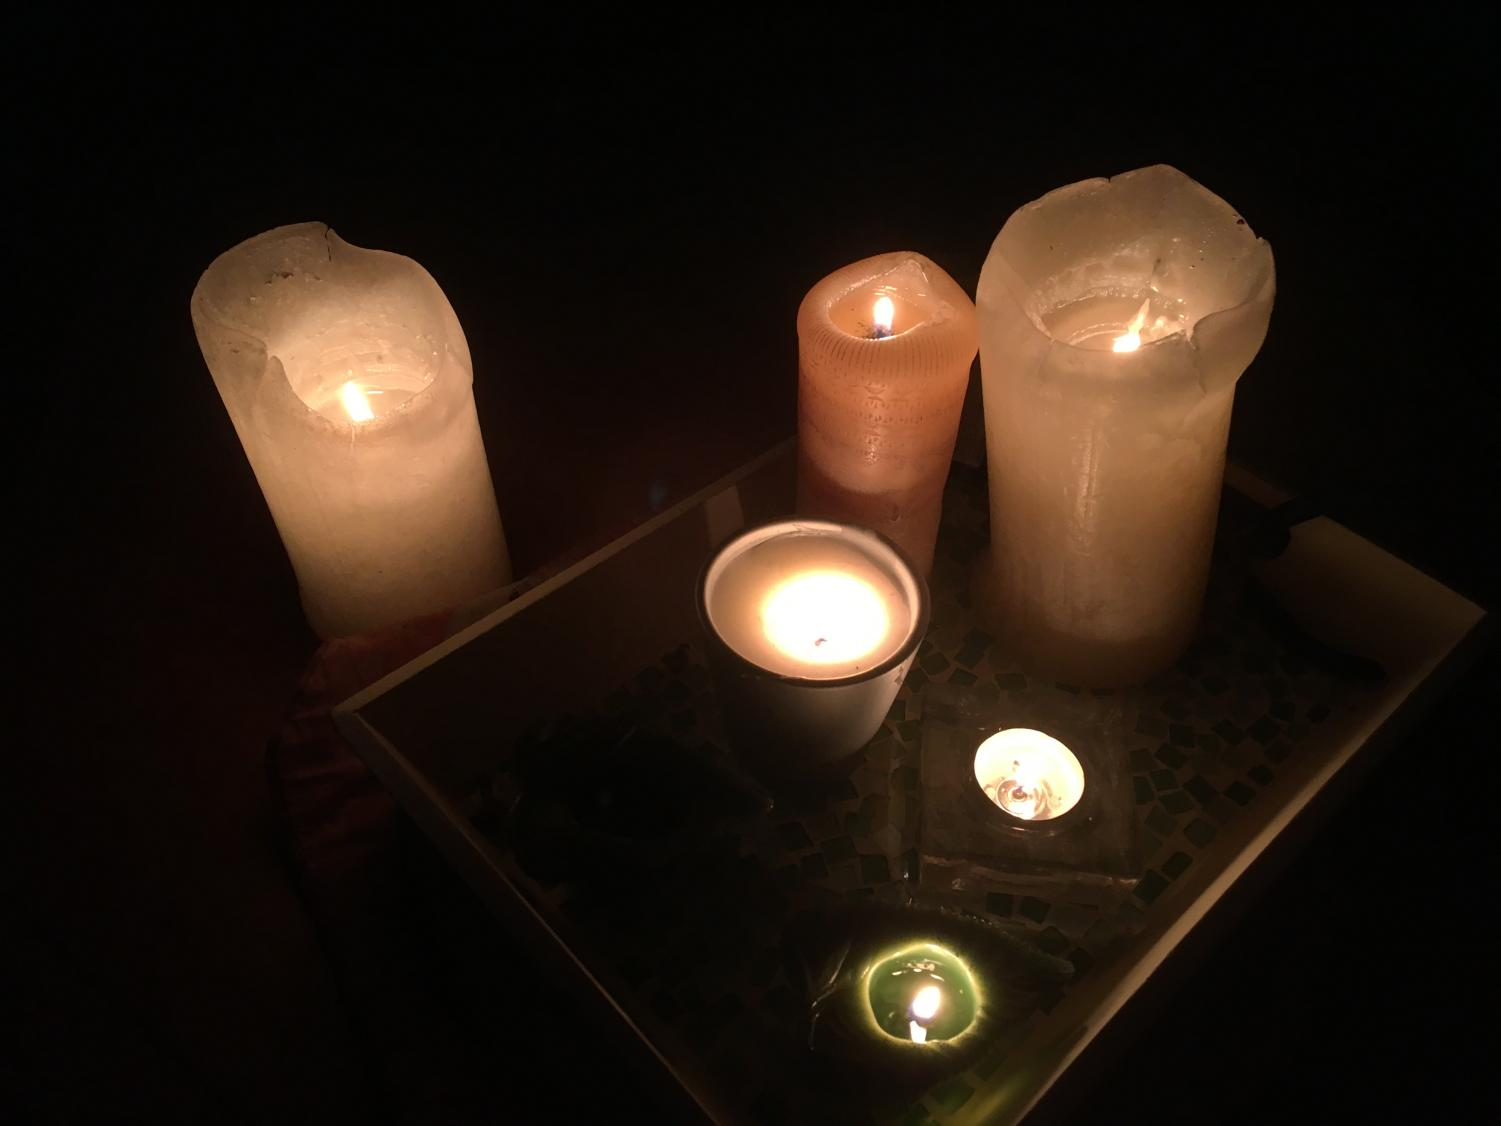 Many families used candles, flashlights, or lanterns during the power outage that began Saturday, October 26.